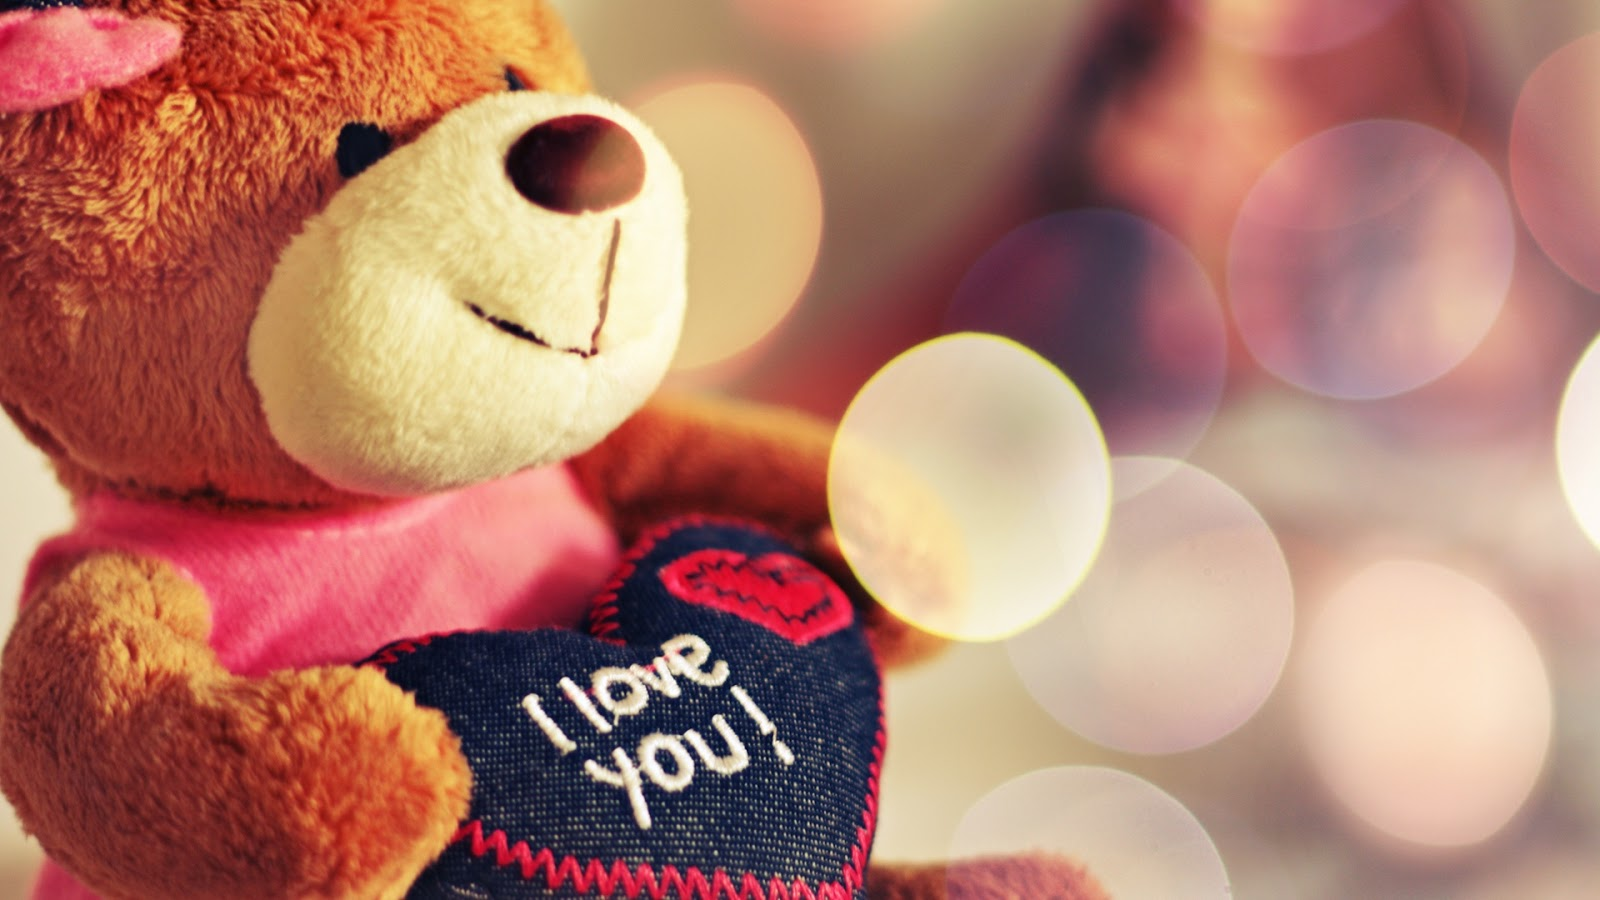 I Love You Teddy Bear 1920x1080 Wallpaper